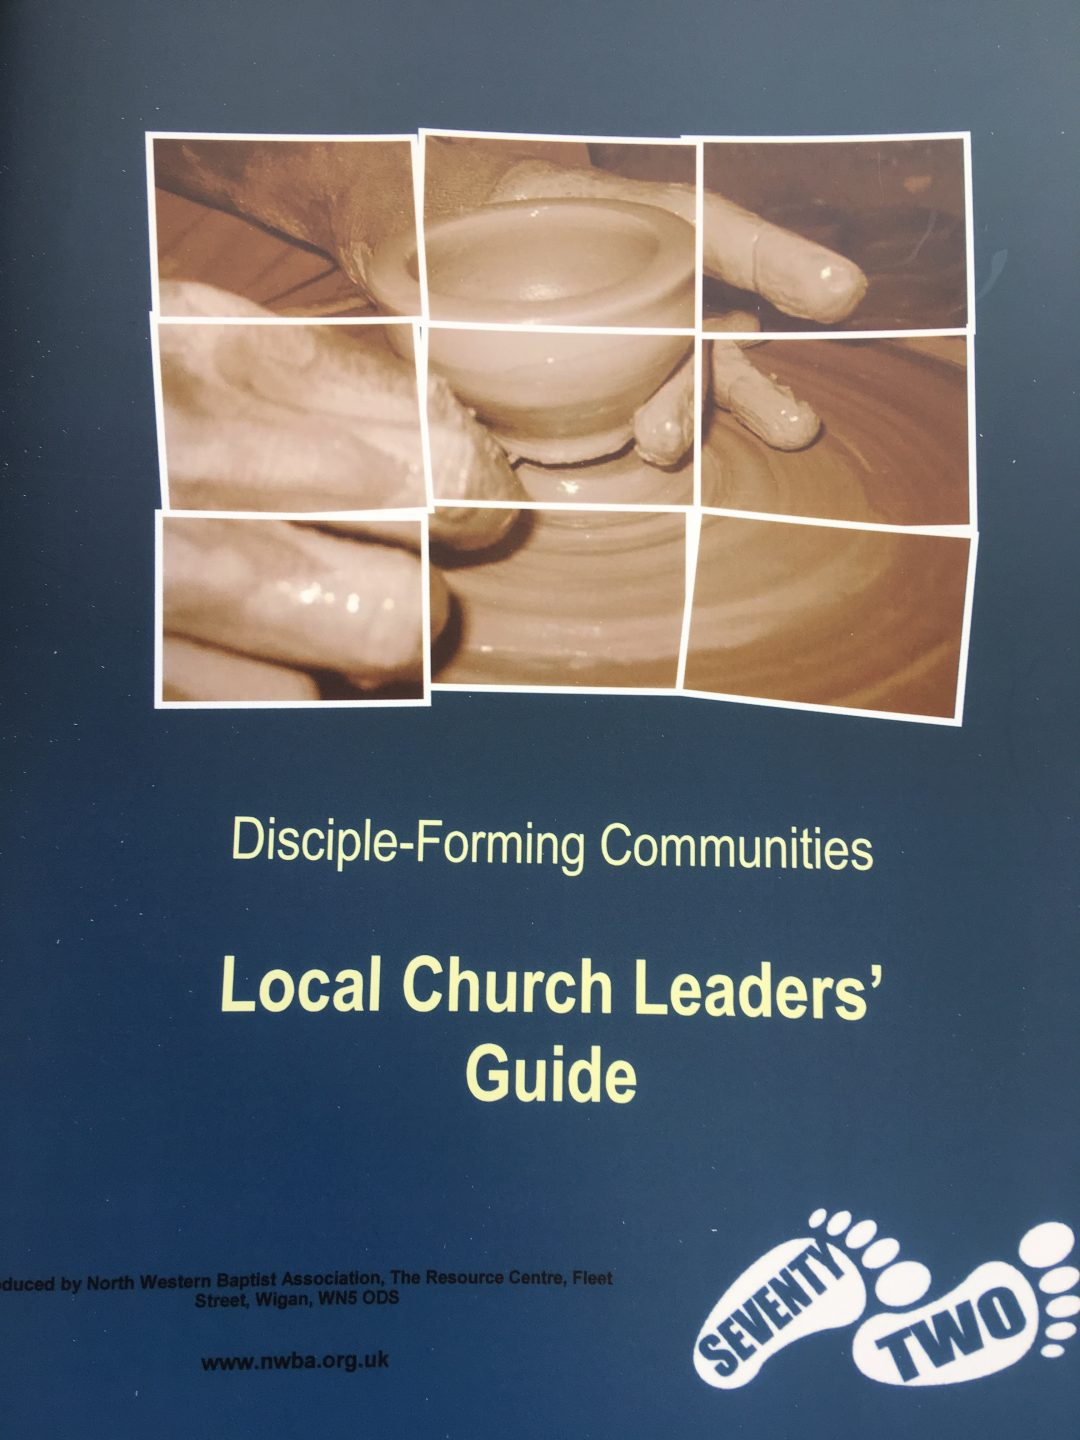 Disciple-Forming Communities